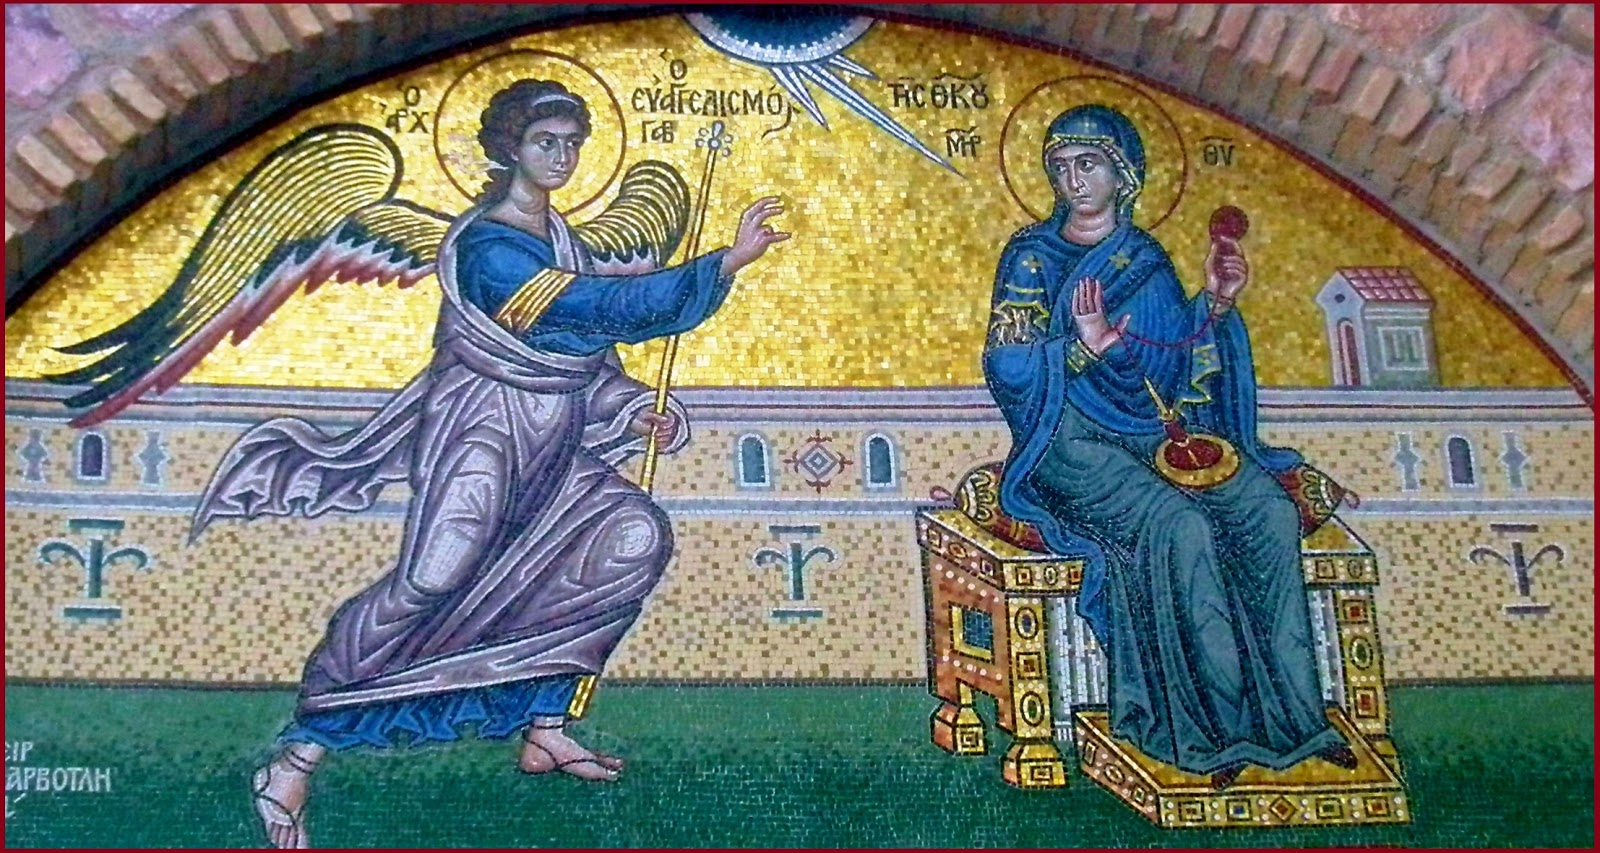 Annunciation of the Most Holy Theotokos. Church of the Annunciation of the Blessed Virgin Mary